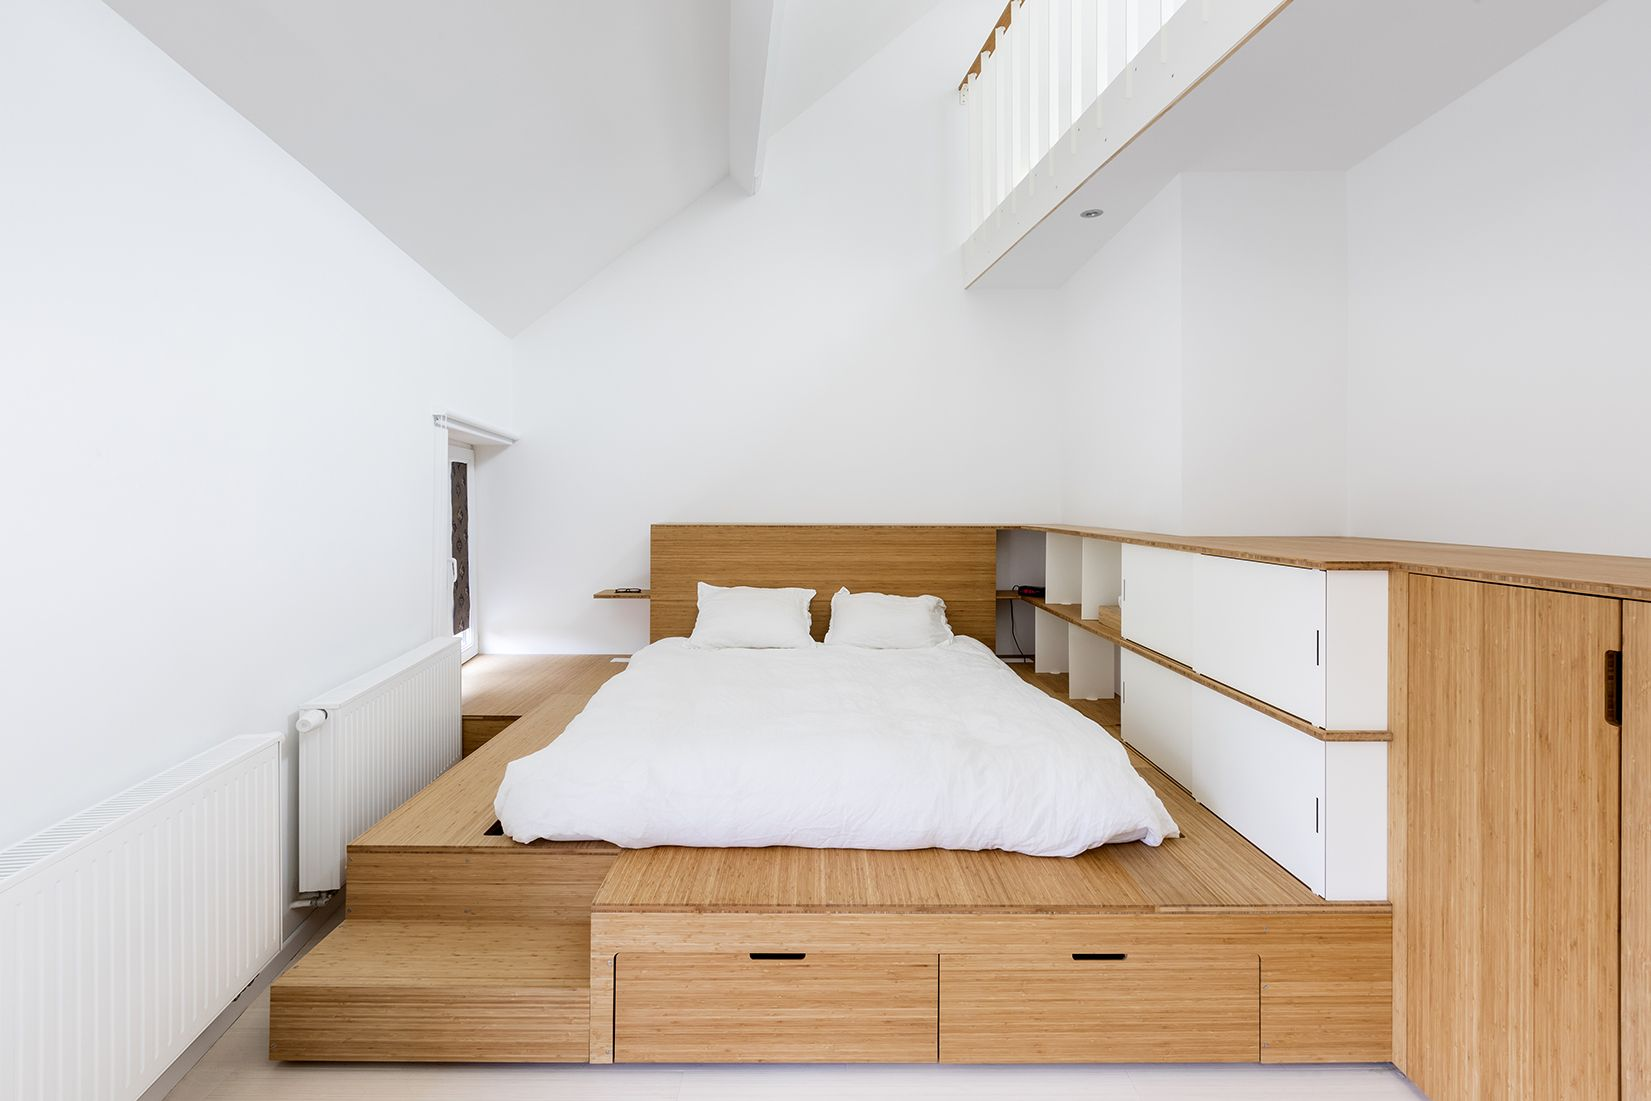 Estrade Lit Integrant Un Dressing Bois Et Acier Avec Large Penderie Et Tiroirs Bed Integrating A Dressing Made Of Steel And Wood With Large Storage Space And D